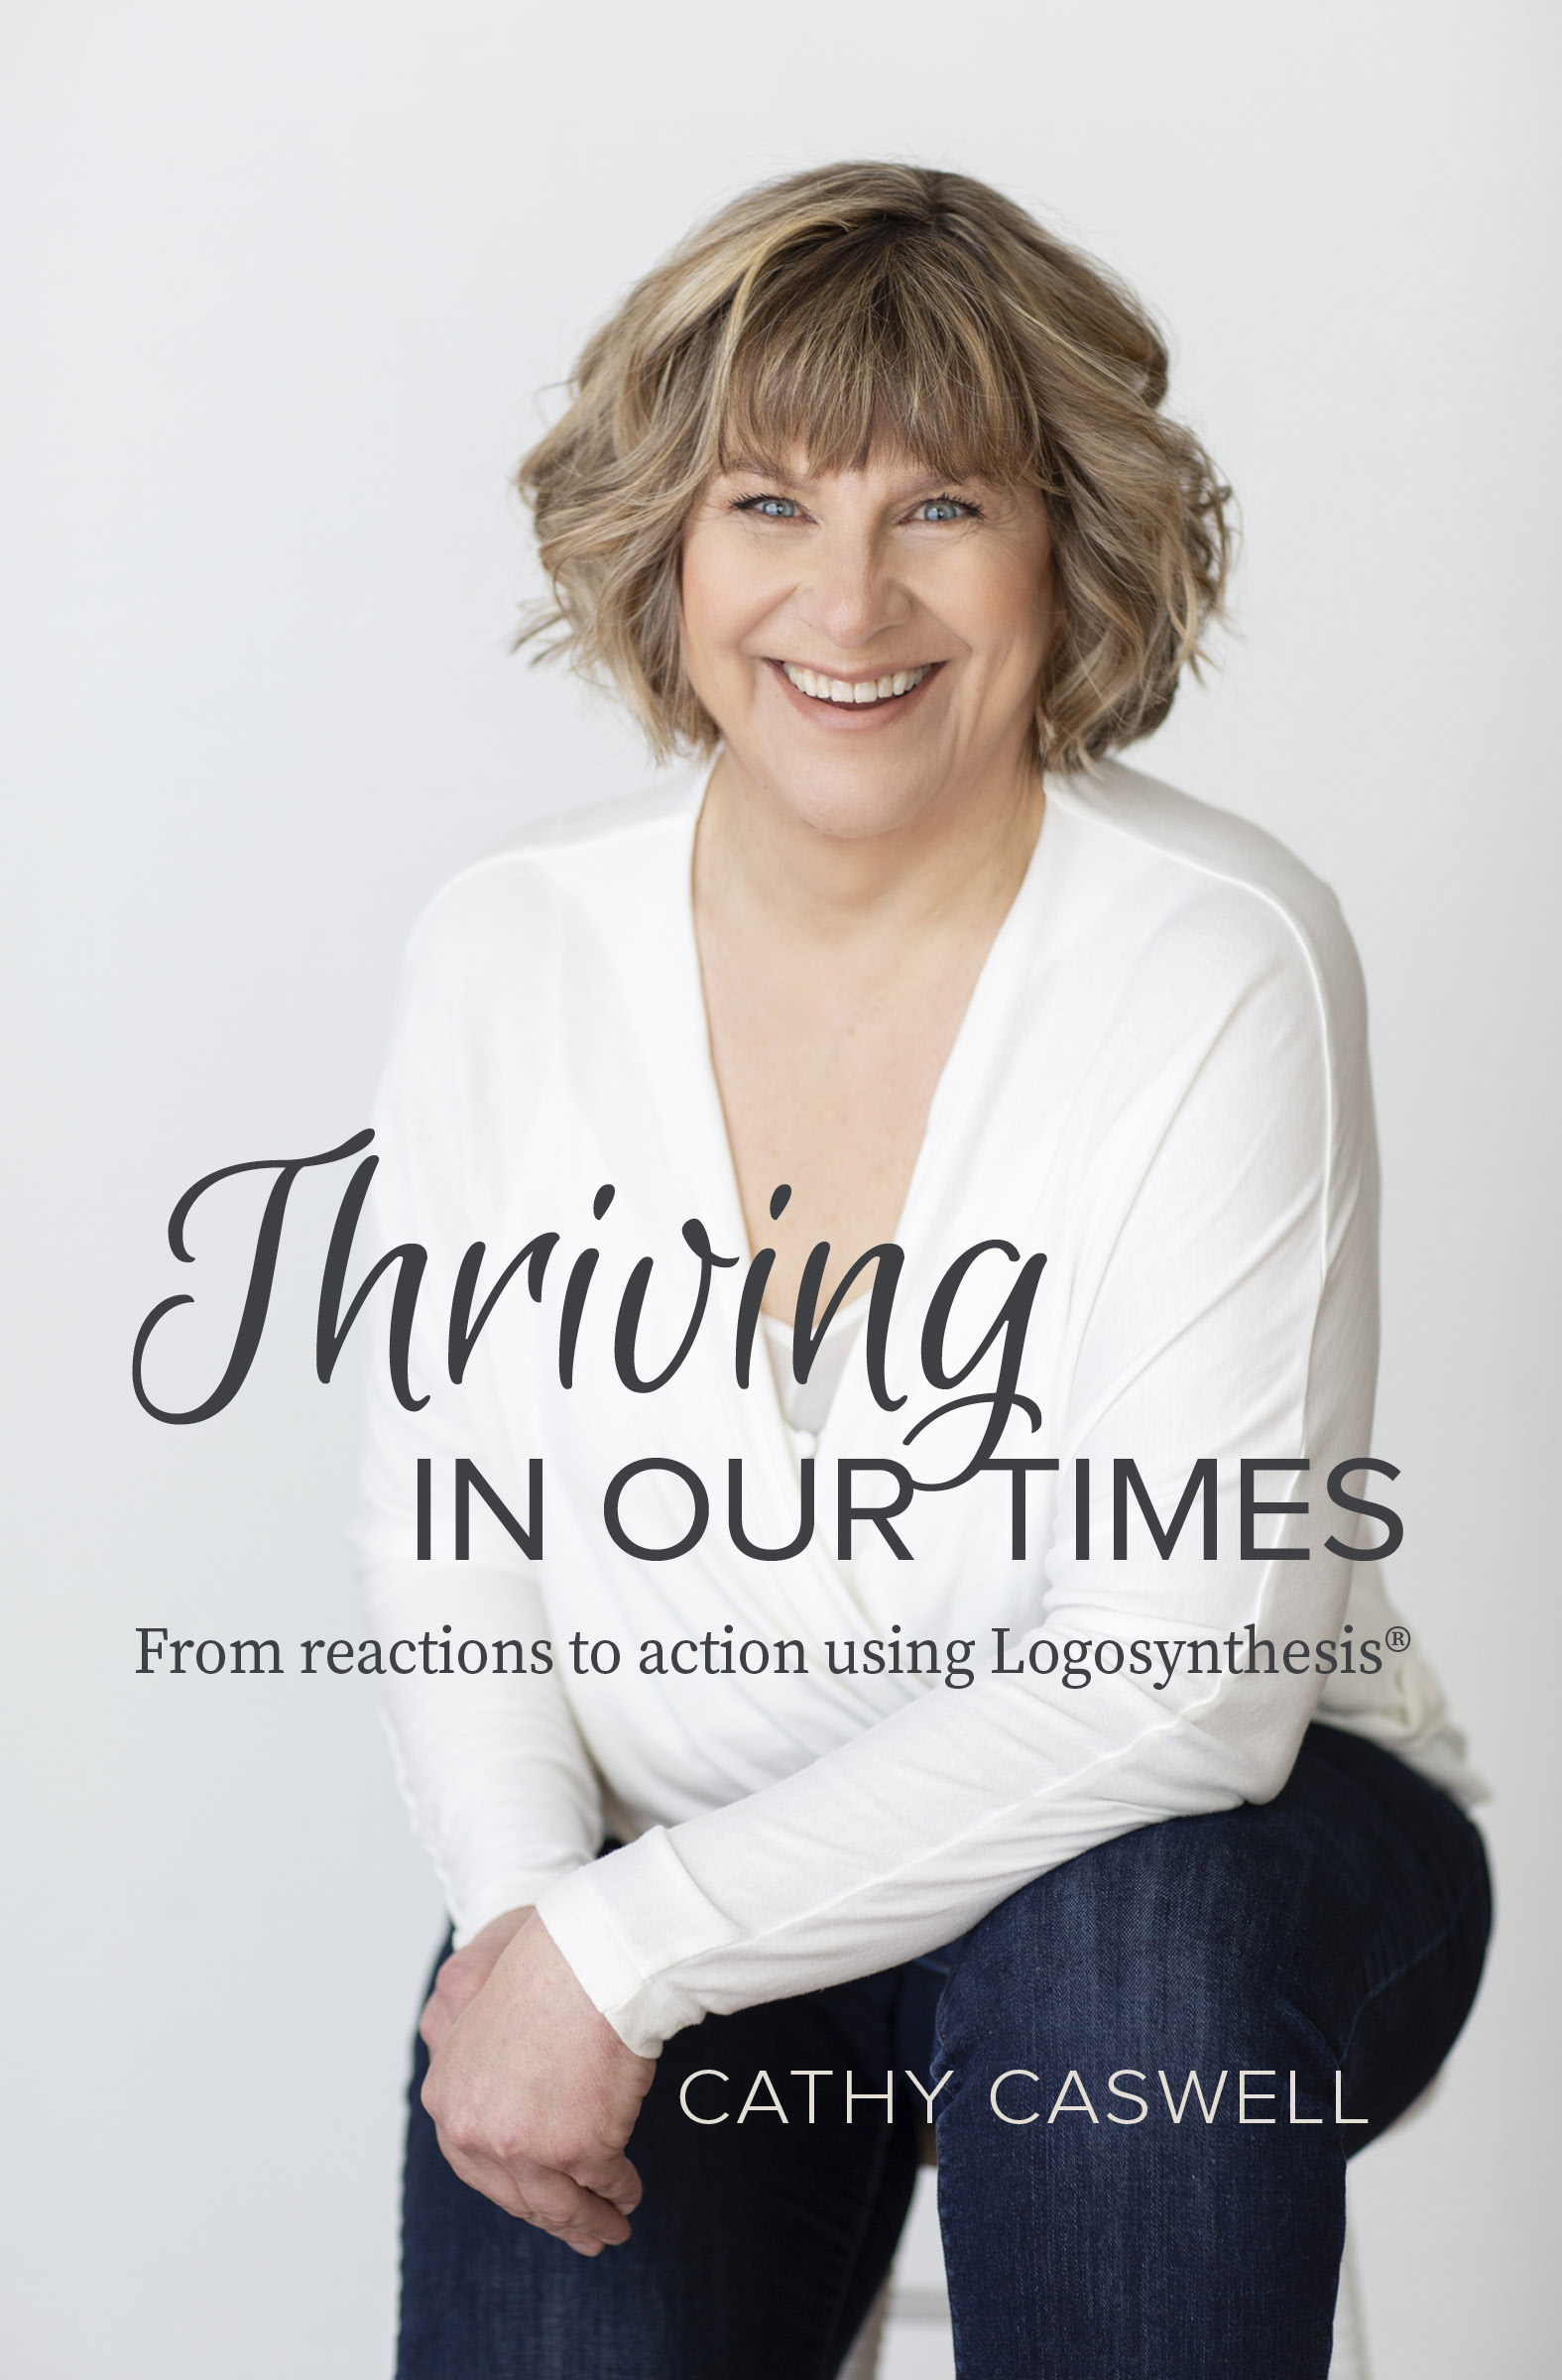 Thriving_In_Our_Times_Logosynthesis_Cathy_Caswell